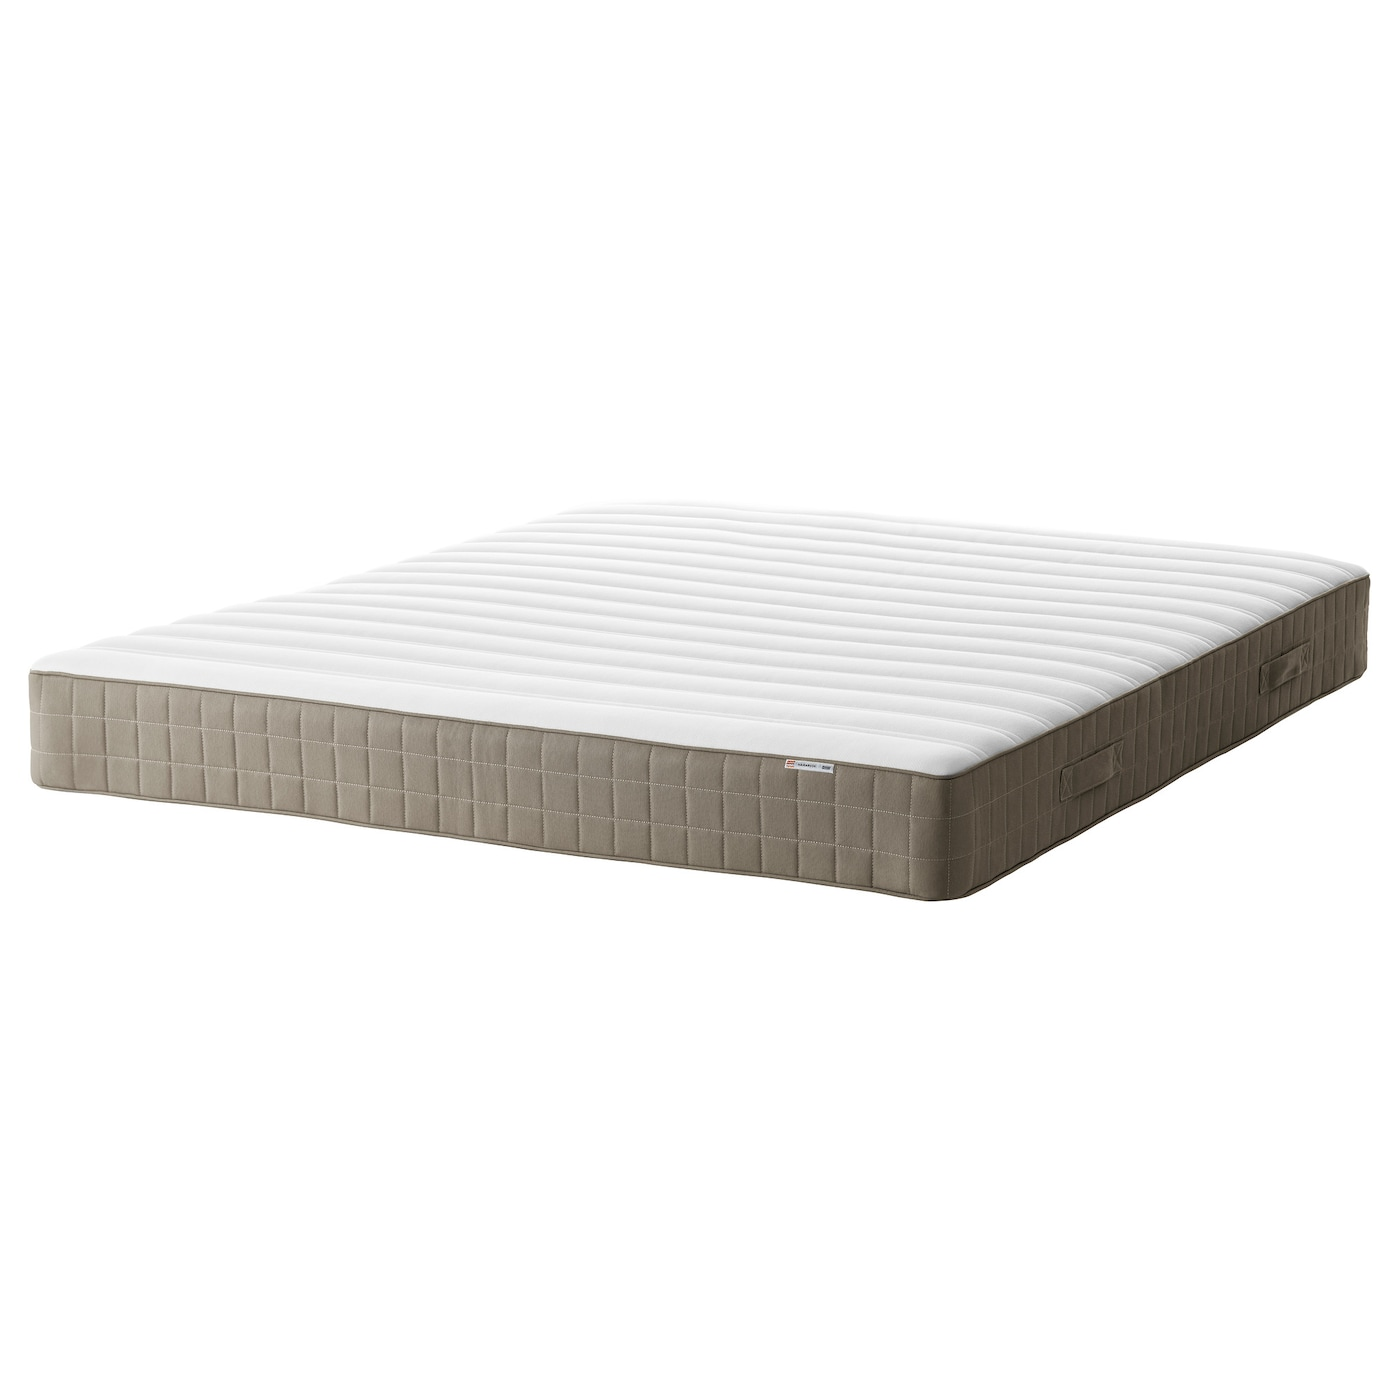 daybed mattress drawers ikea minnesund white twin with of firm mattresses hemnes